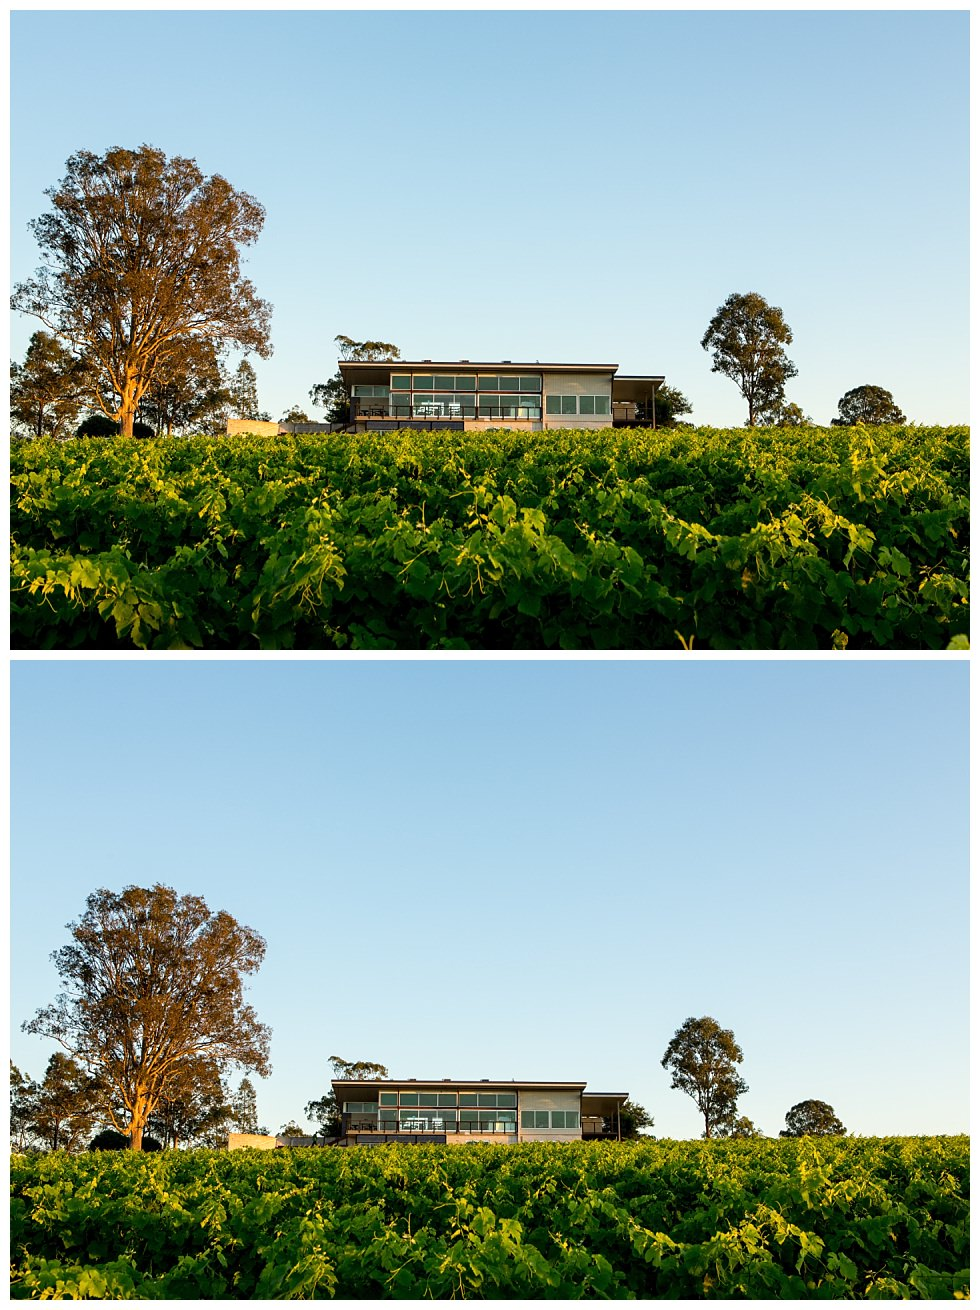 ArtyJ Photography | Lambloch, Wine Bottles, Commercial, Pokolbin, Australia, NSW, Hunter Valley, Photography | Lambloch | Commercial